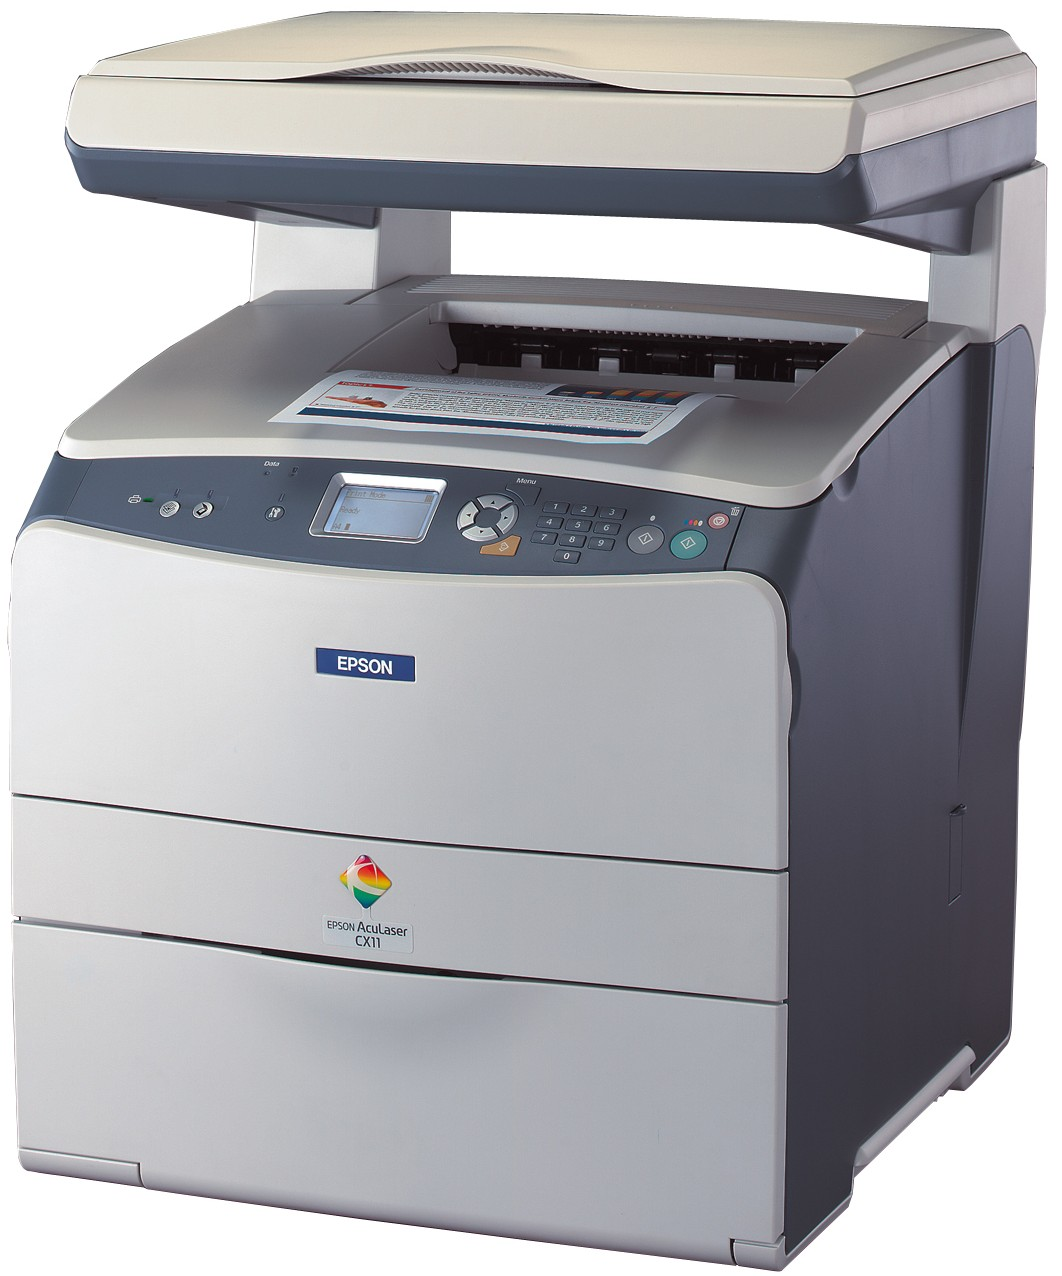 Epson AcuLaser CX11N Driver Software Download